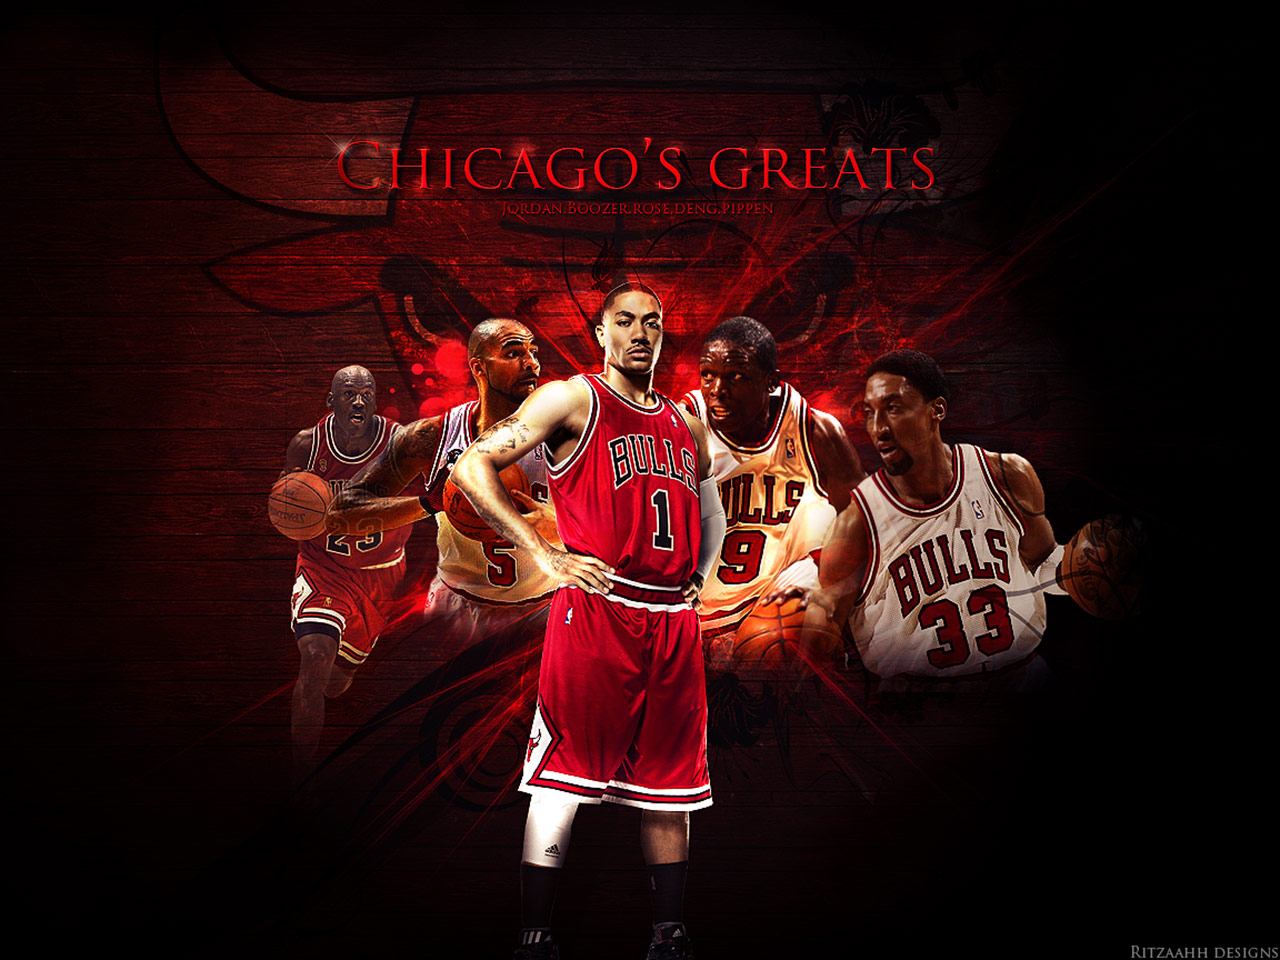 pin scottie pippen screensavers images to pinterest